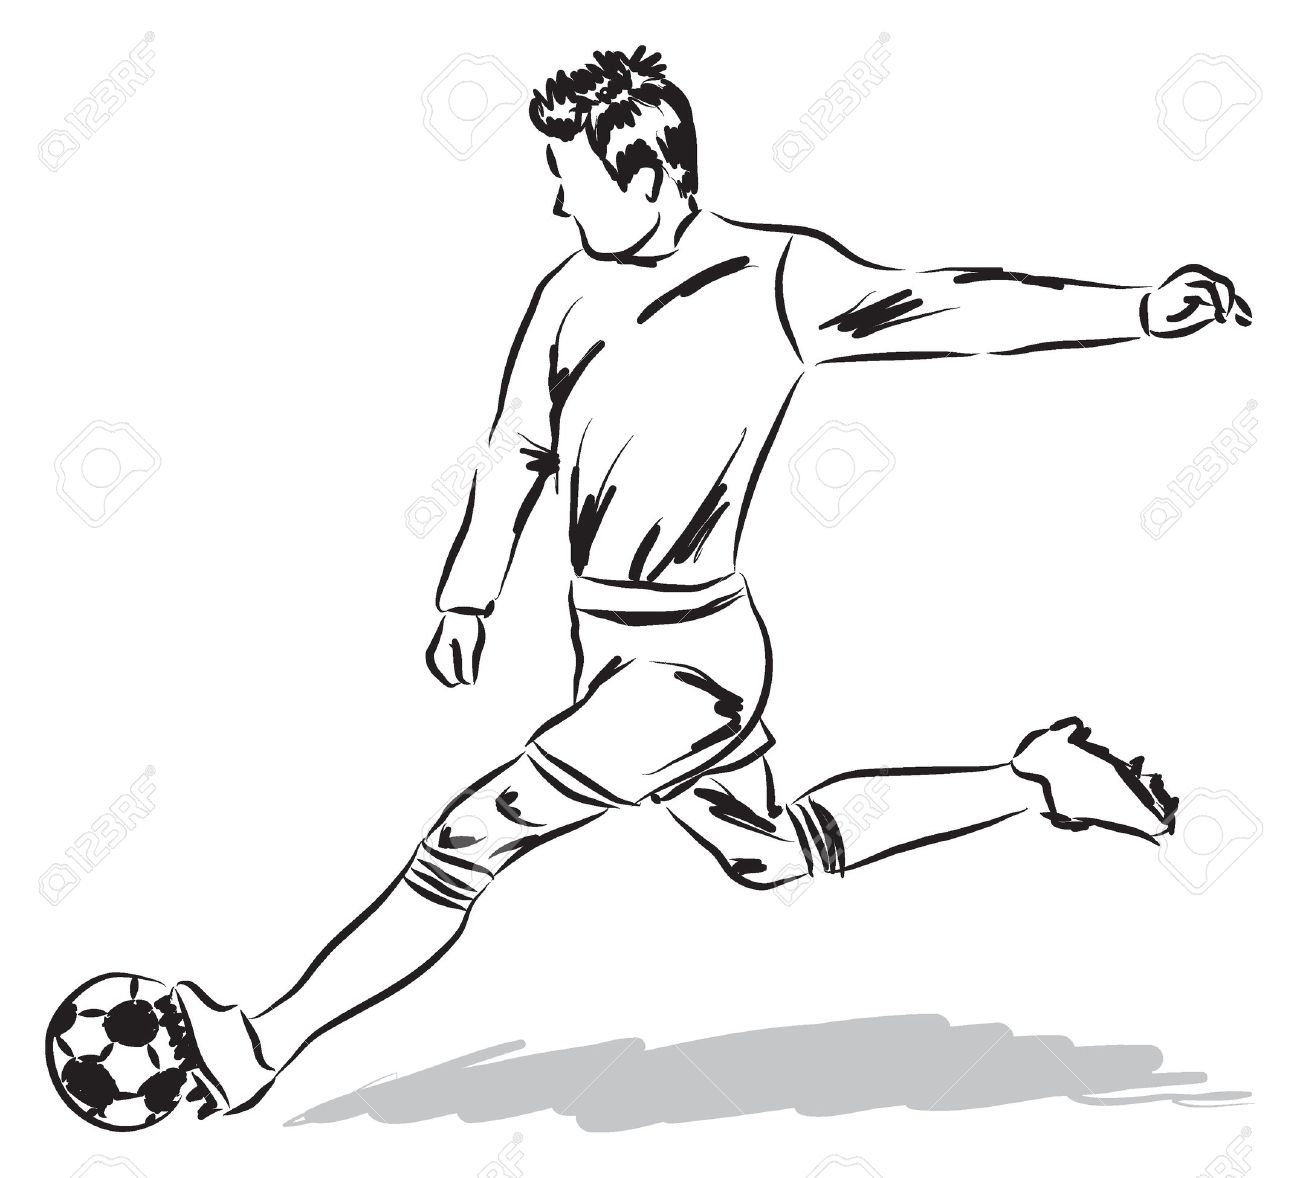 Football soccer player illustration stock vector 28506554